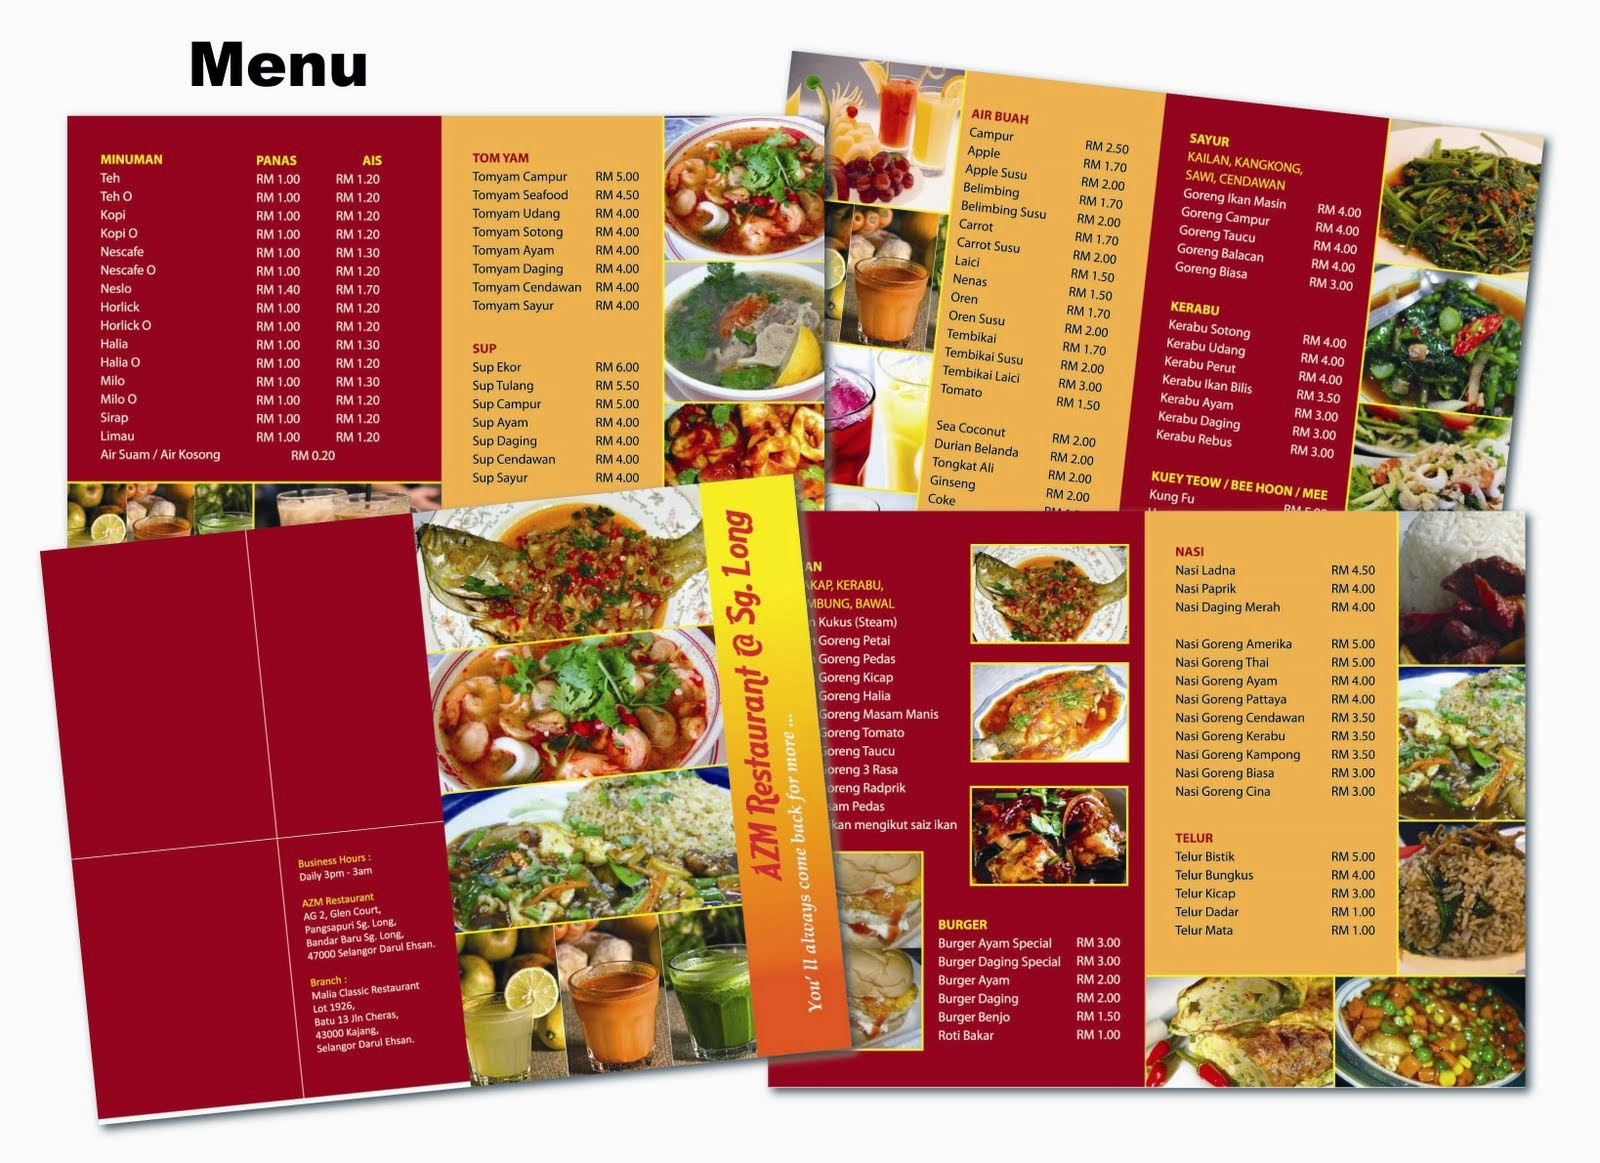 Beautiful restaurant menu designs inspiration design for Cafe menu design template free download